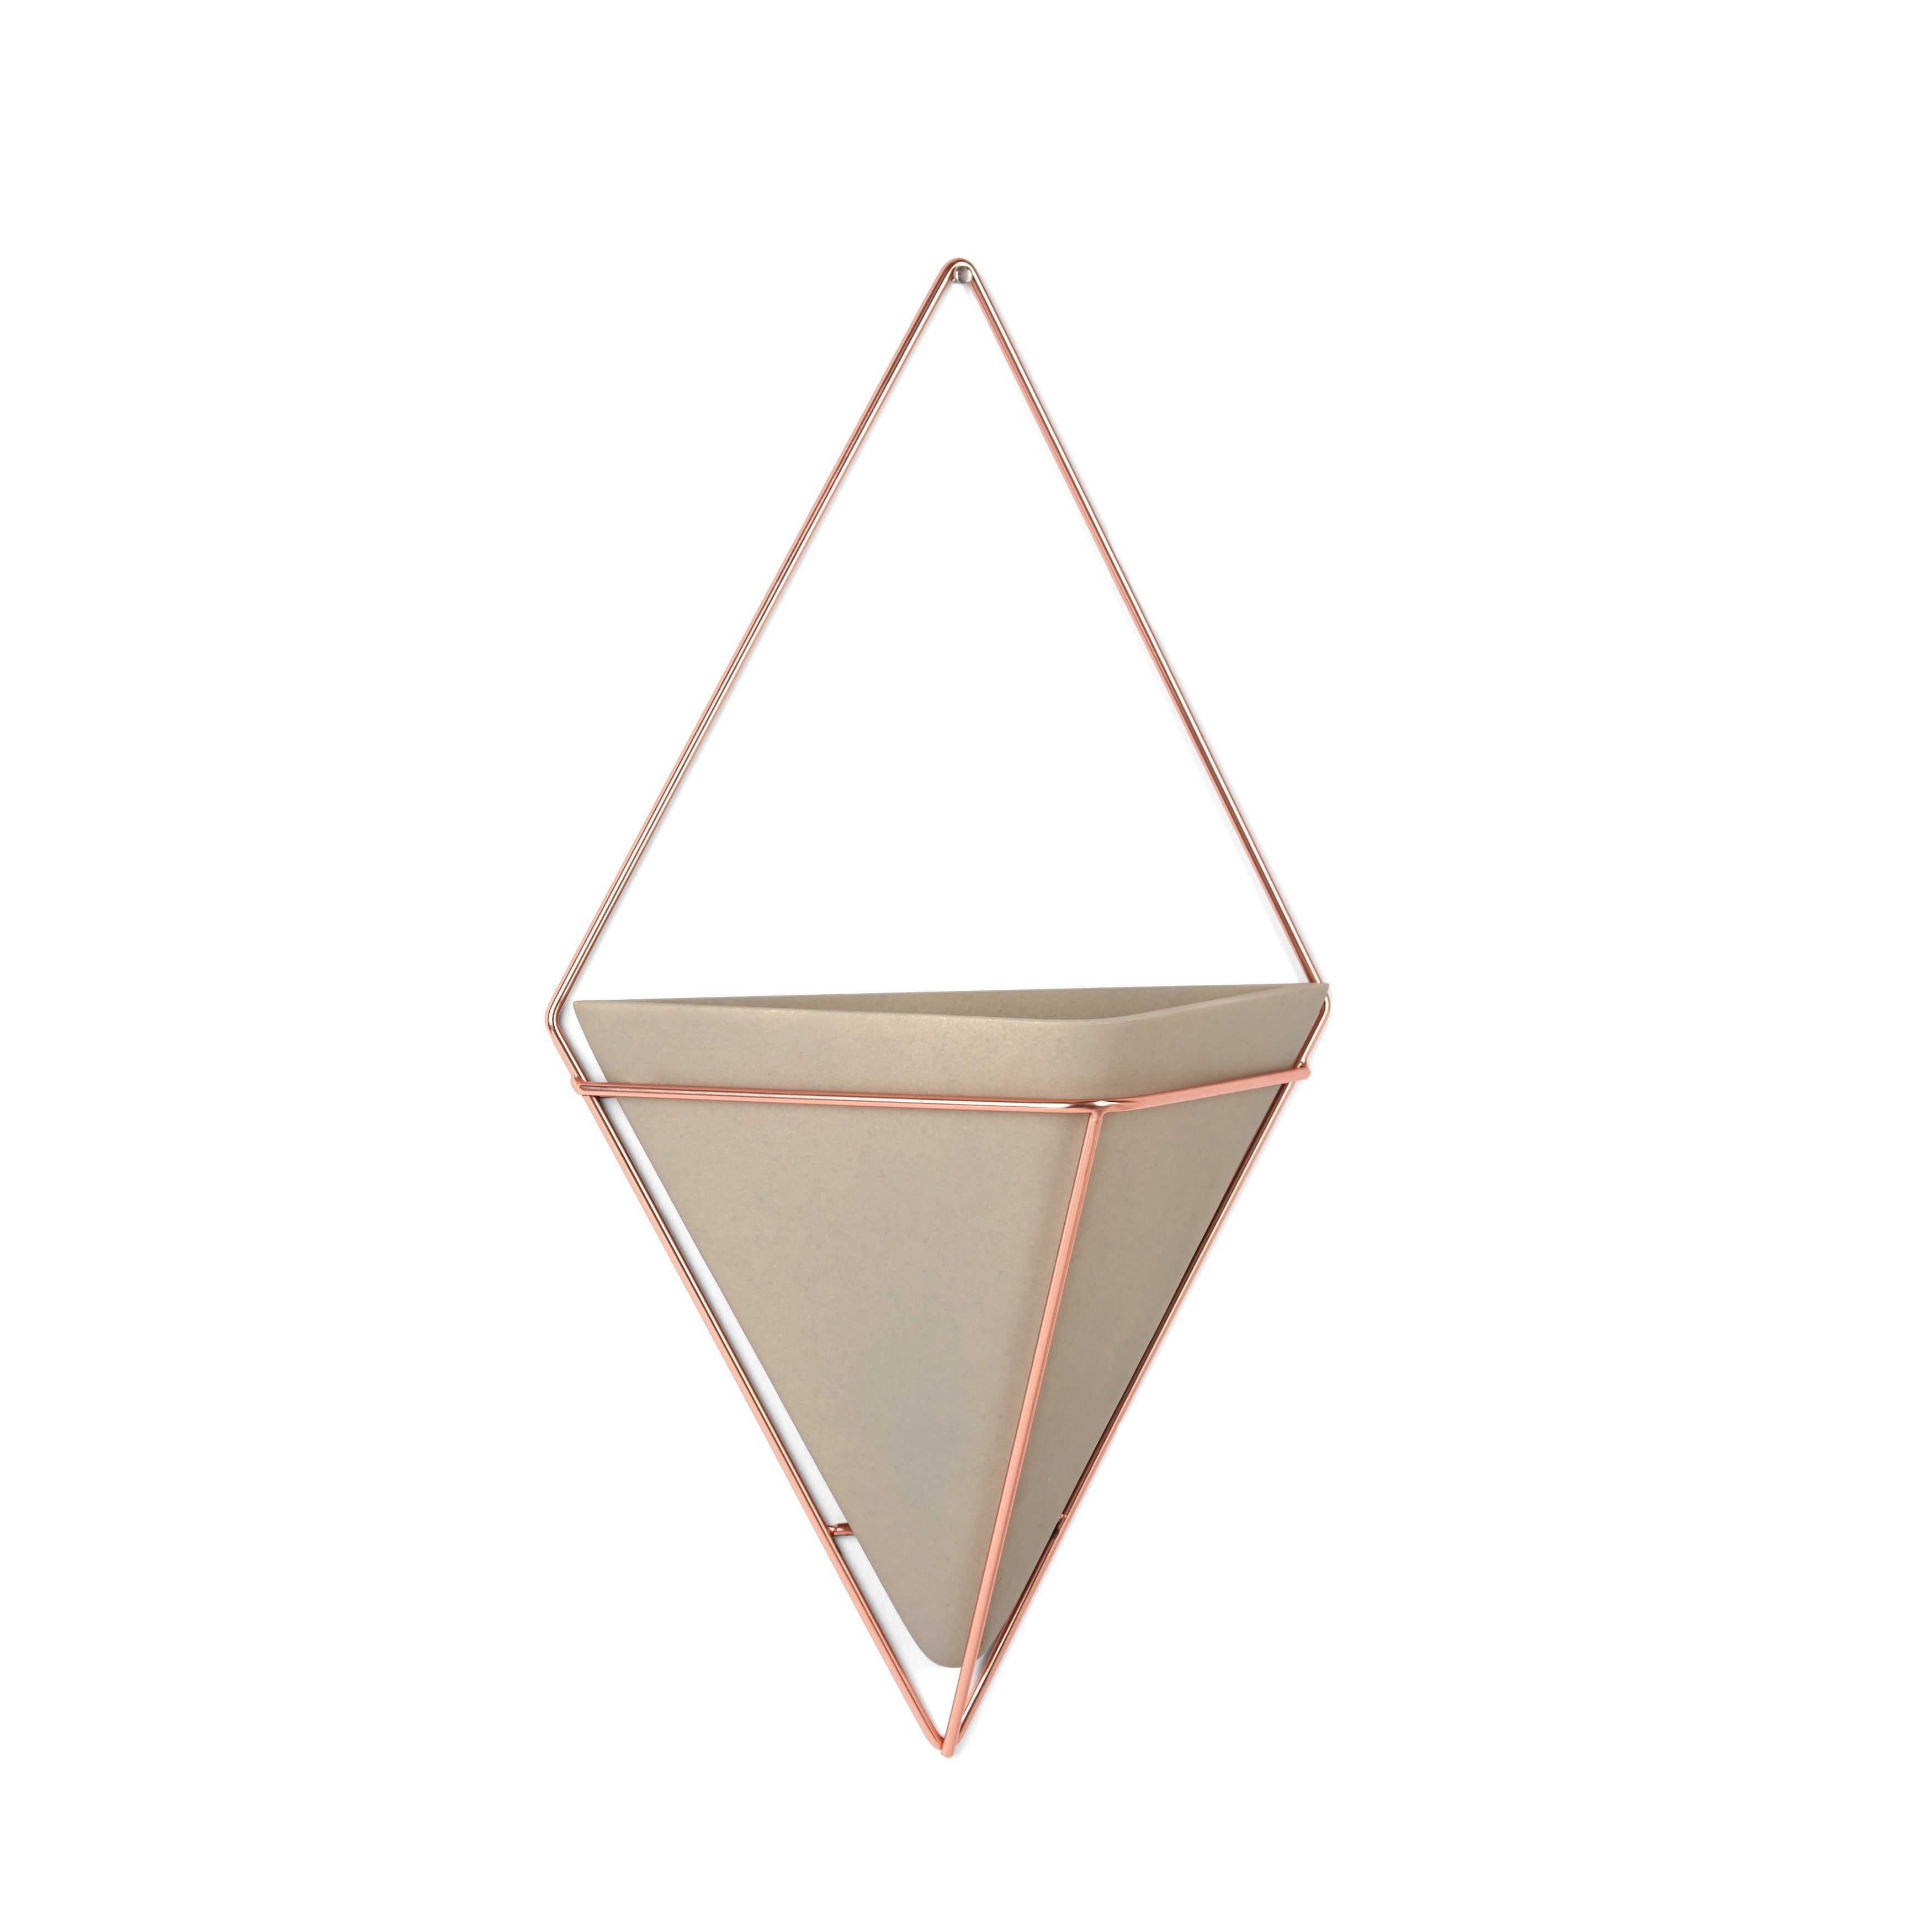 Trendy 2 Piece Trigg Wall Decor Sets (Set Of 2) Inside Shop Umbra Trigg Hanging Planter Vase & Geometric Wall Decor – Free (View 16 of 20)